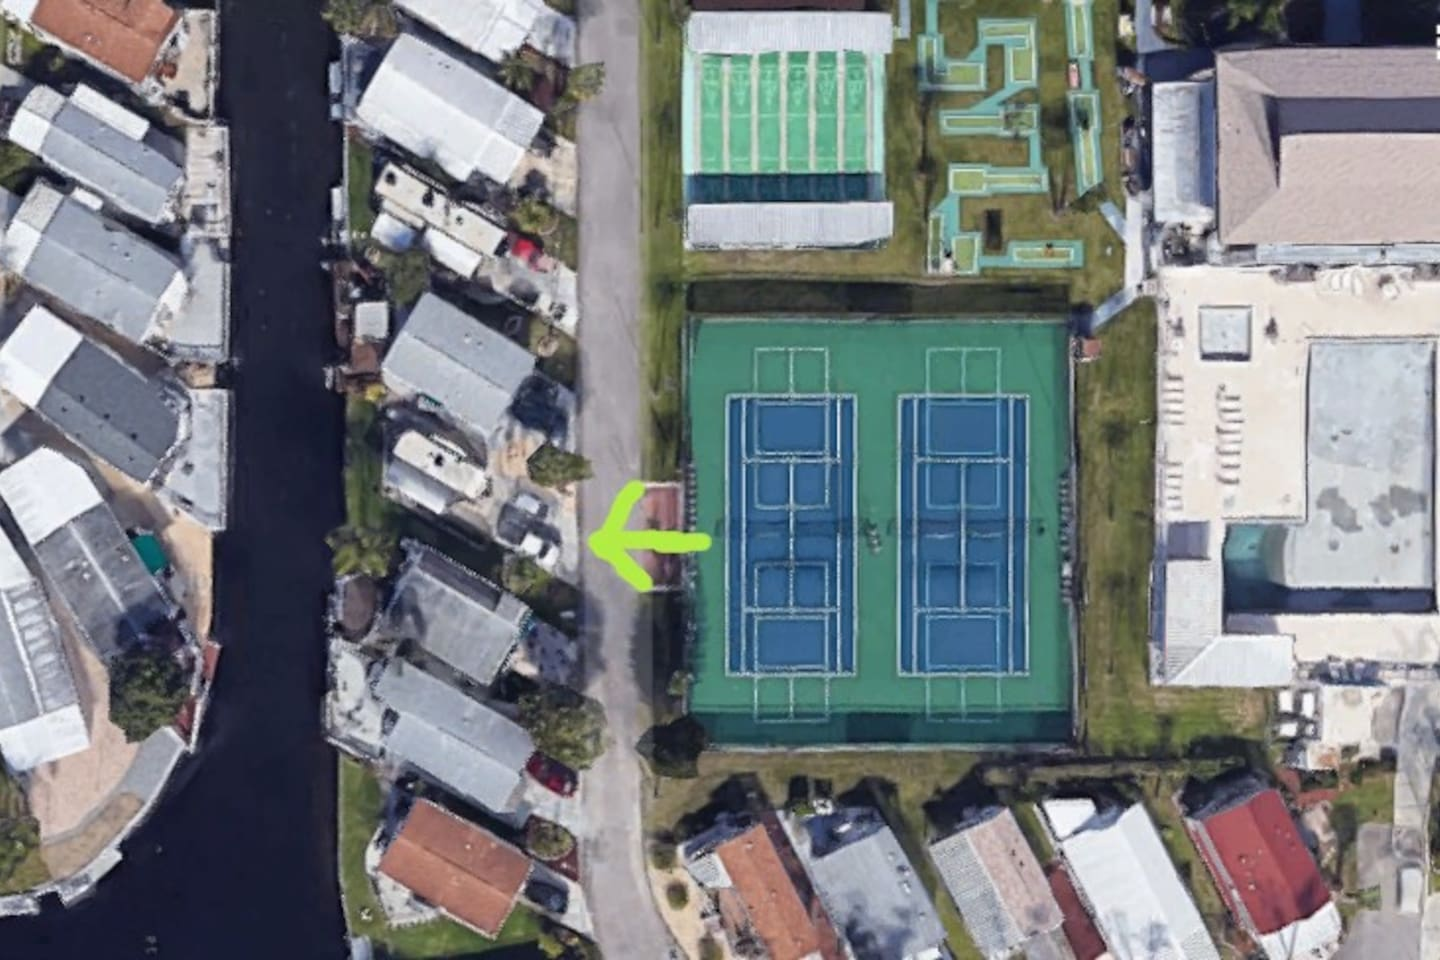 This is a satellite image of the RV pad note the proximity to the tennis court and a large swimming pool and clubhouse.